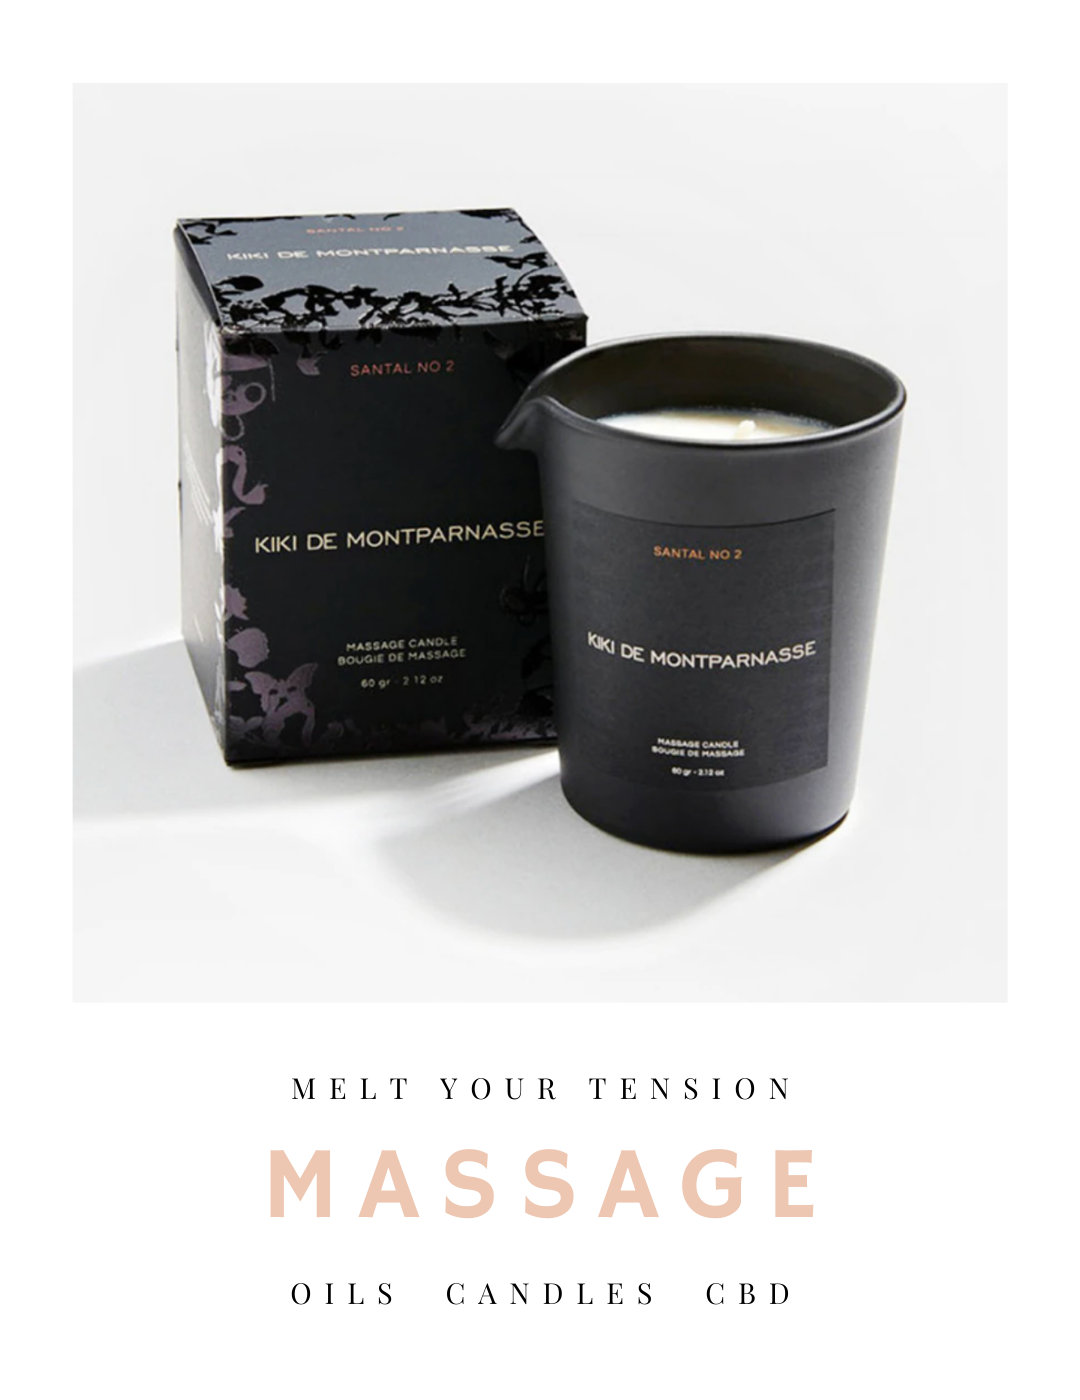 massage, massage oil, oil, candle, cbd, bath, salts,